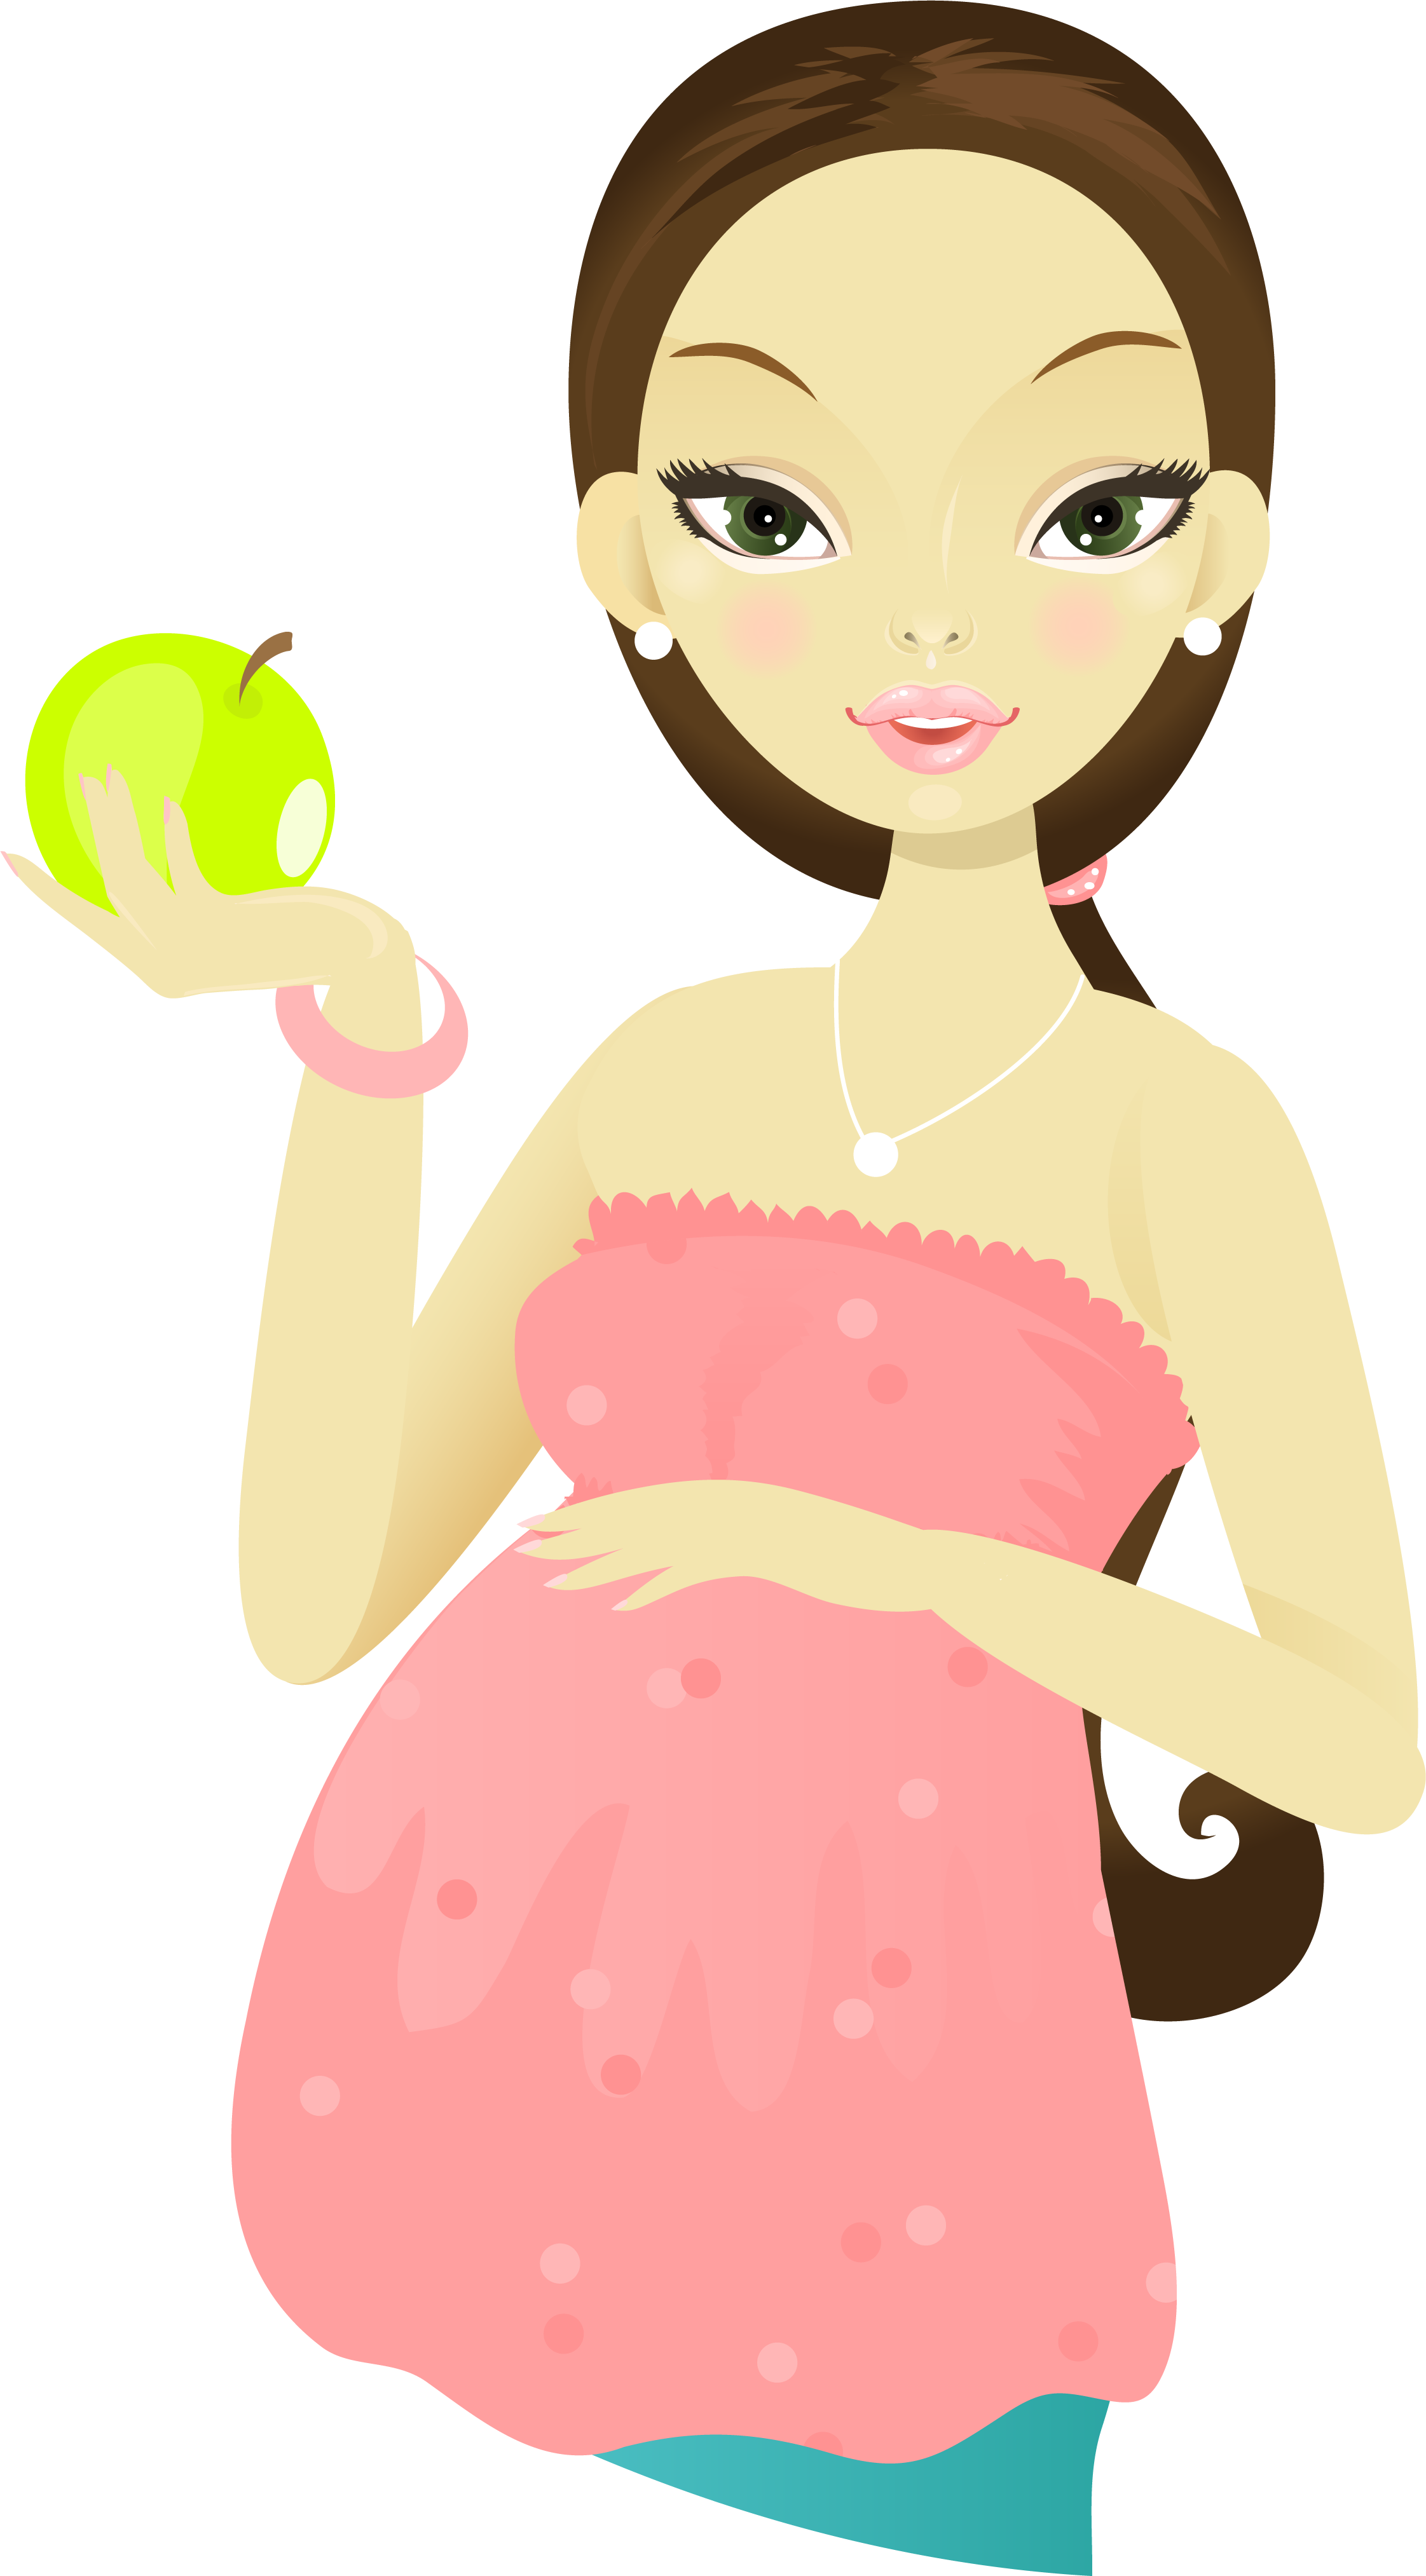 Pregnancy cartoon woman holding. Mother clipart pregnant lady